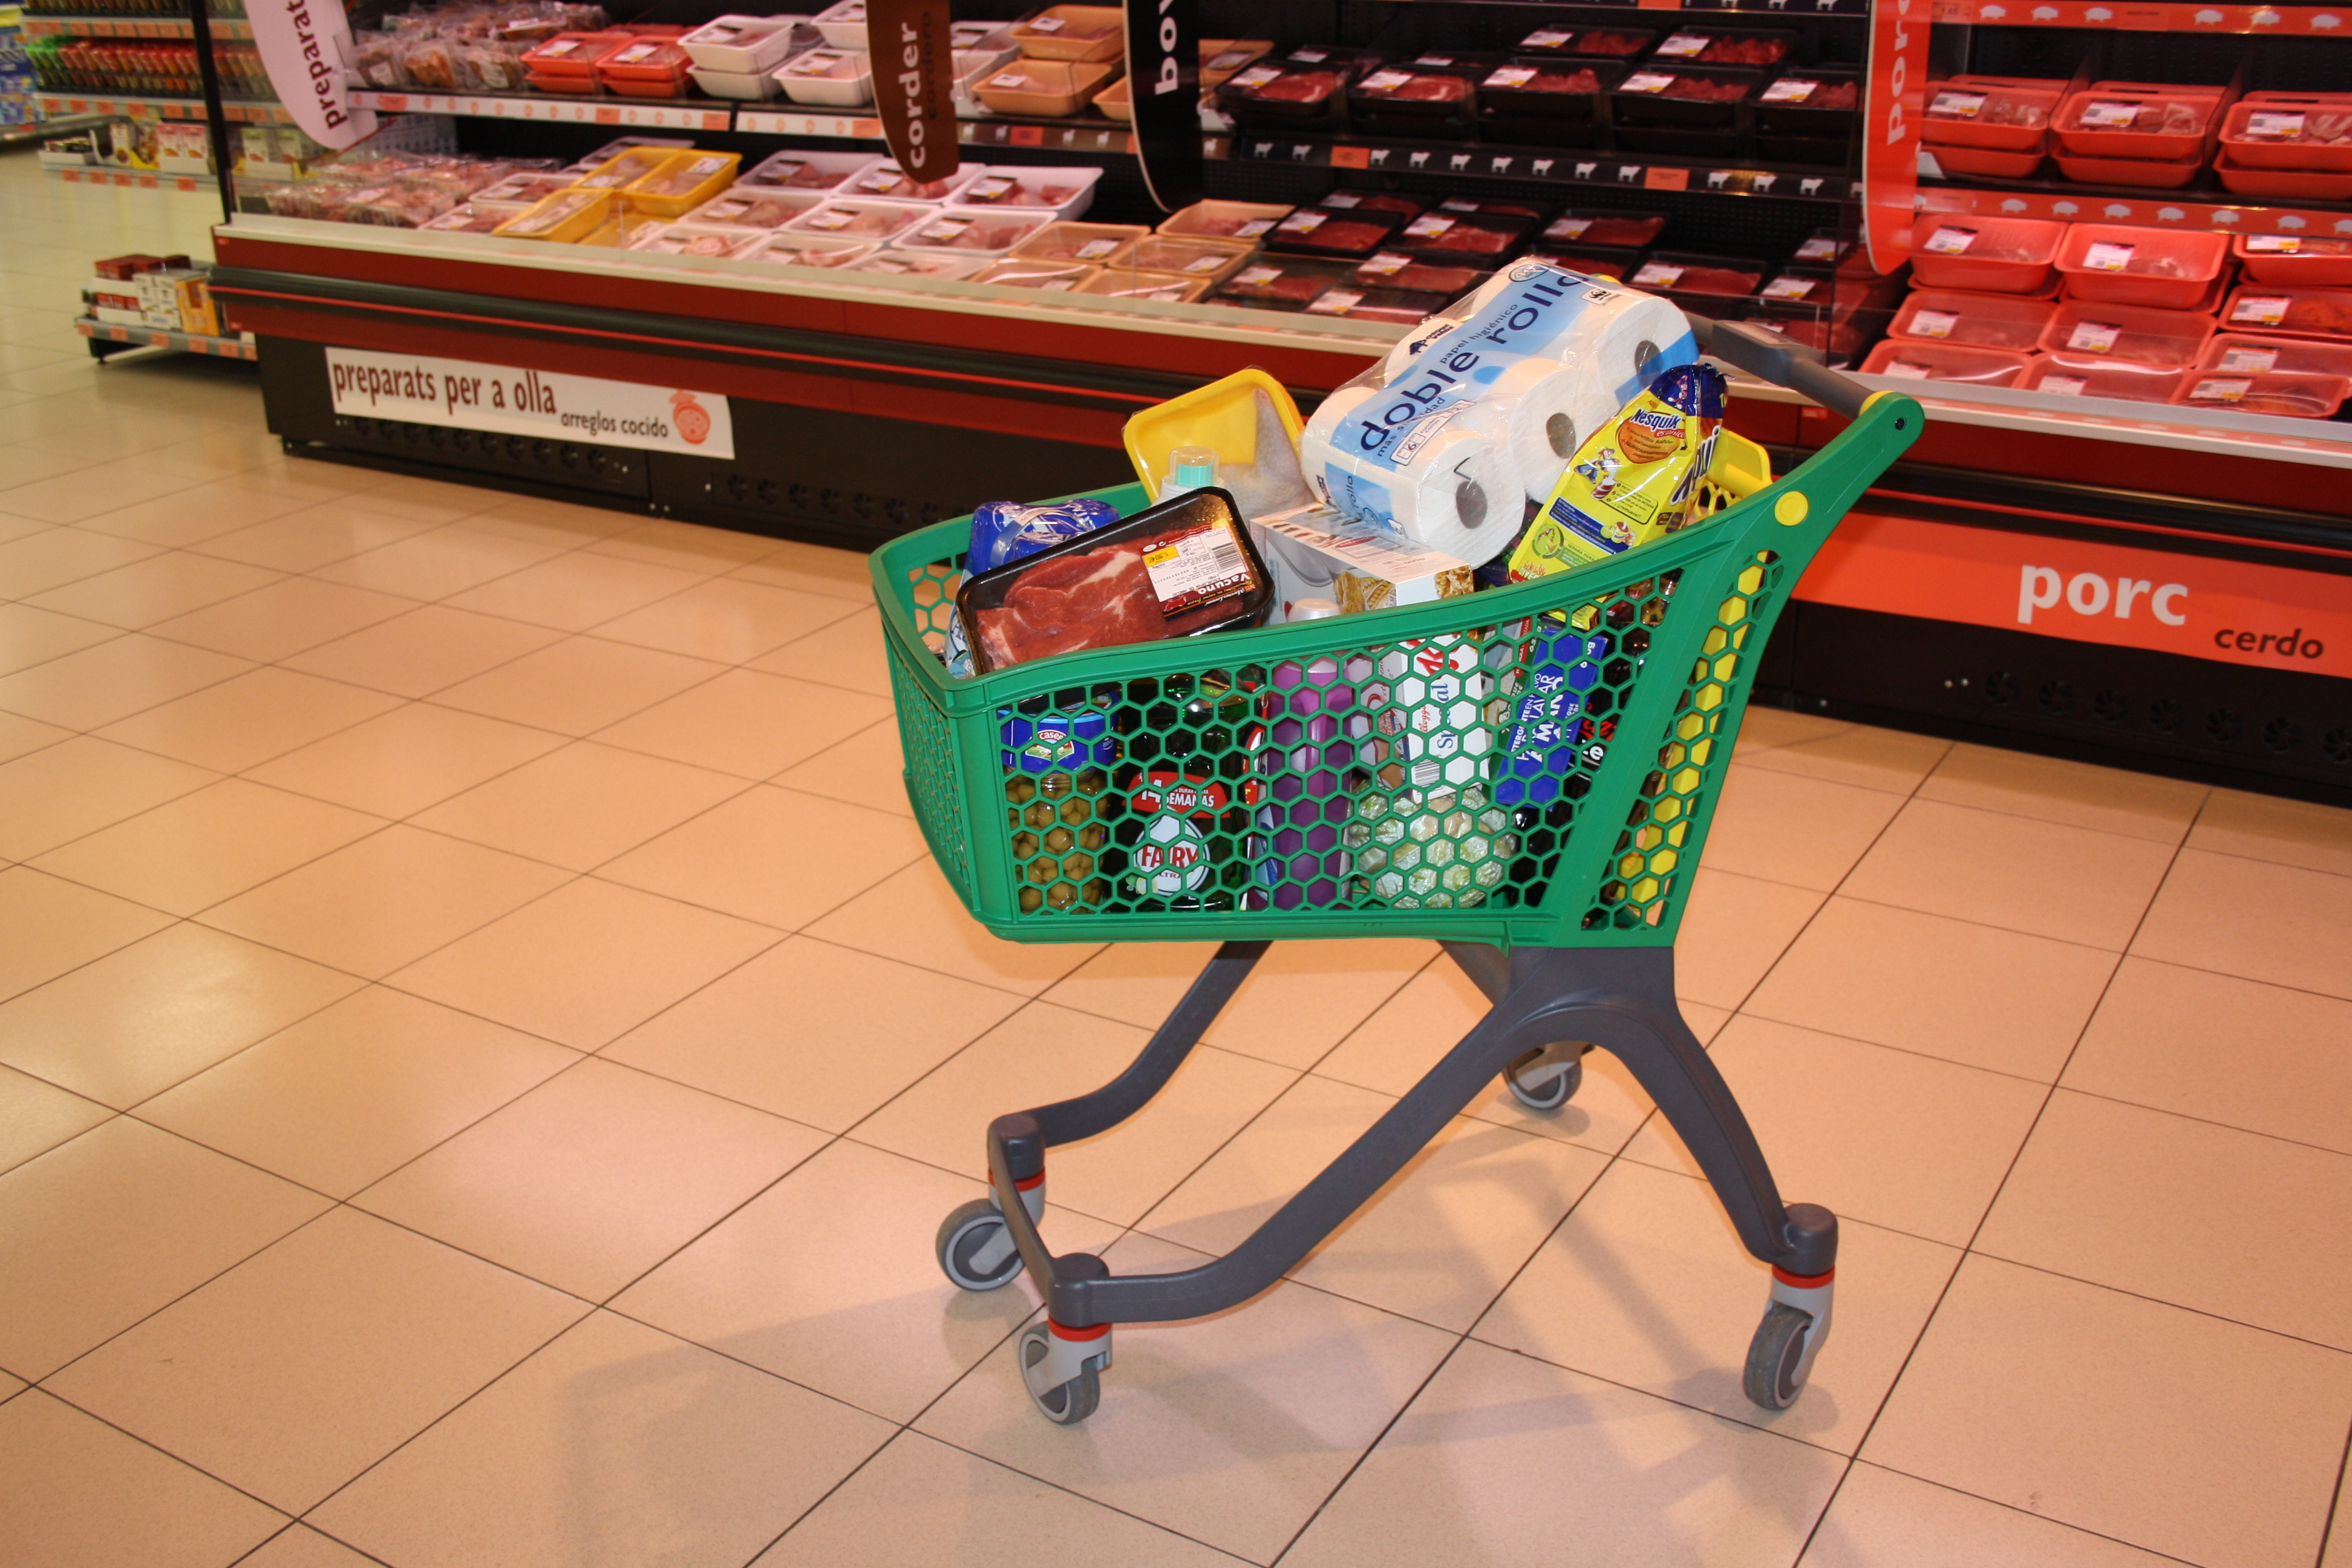 A shopping cart filled with common household goods and groceries.